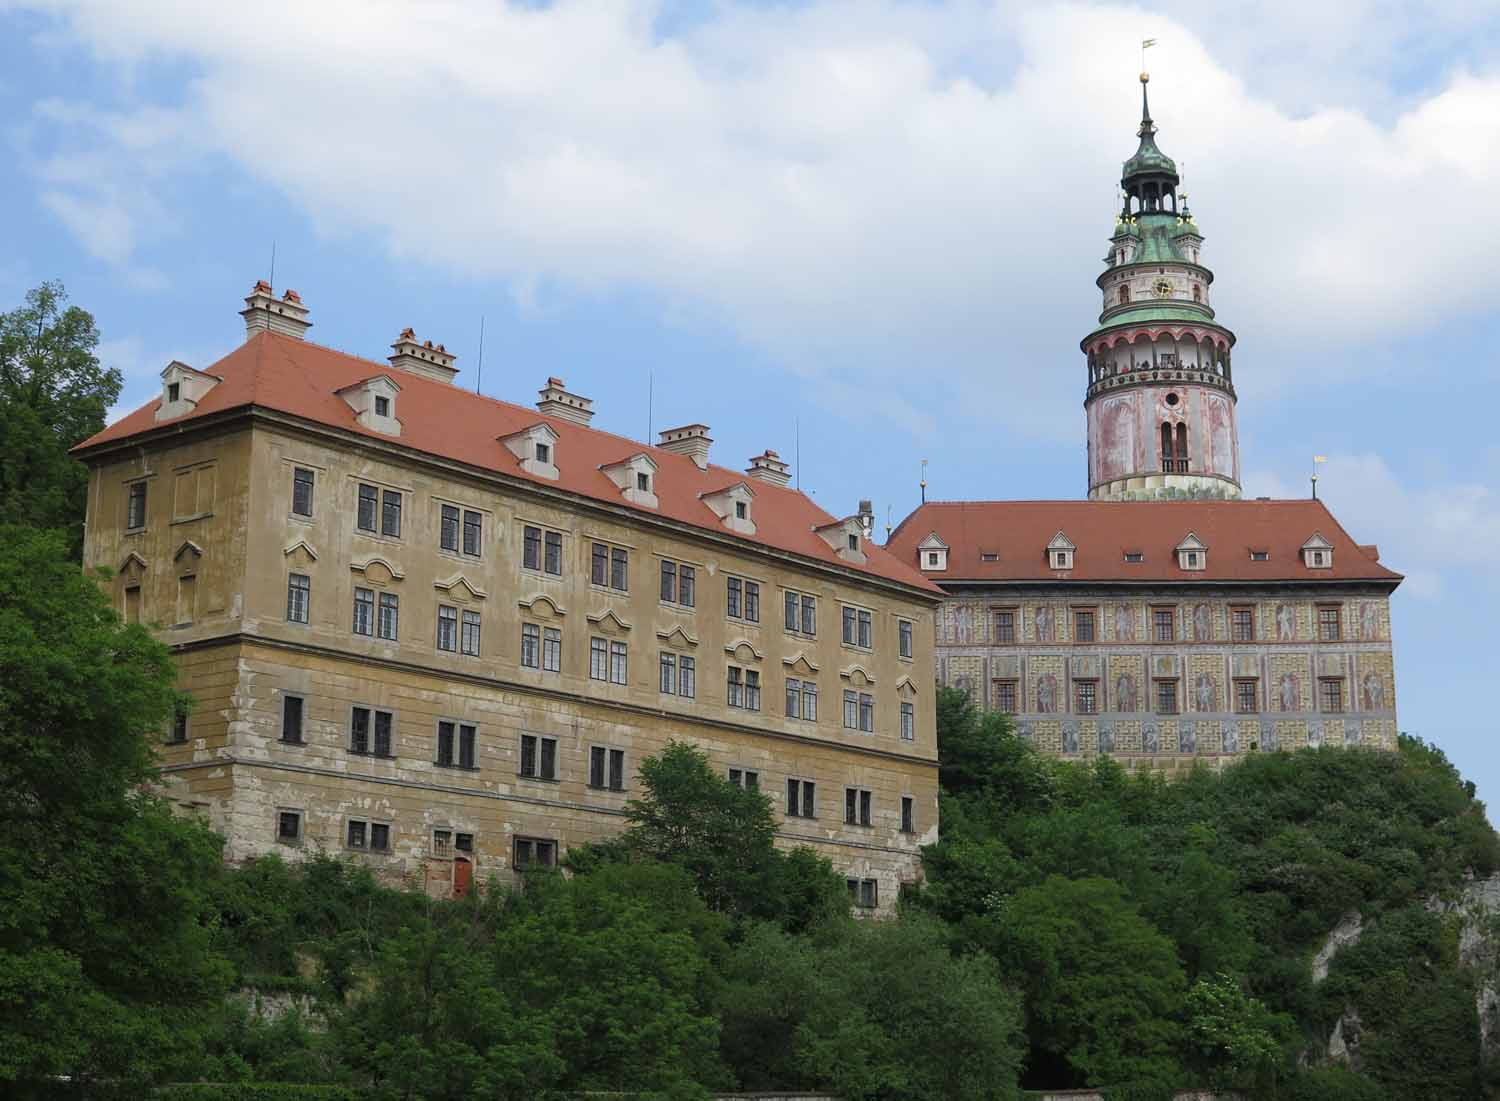 czech-republic-czesky-krumlov-tower-and-buildings